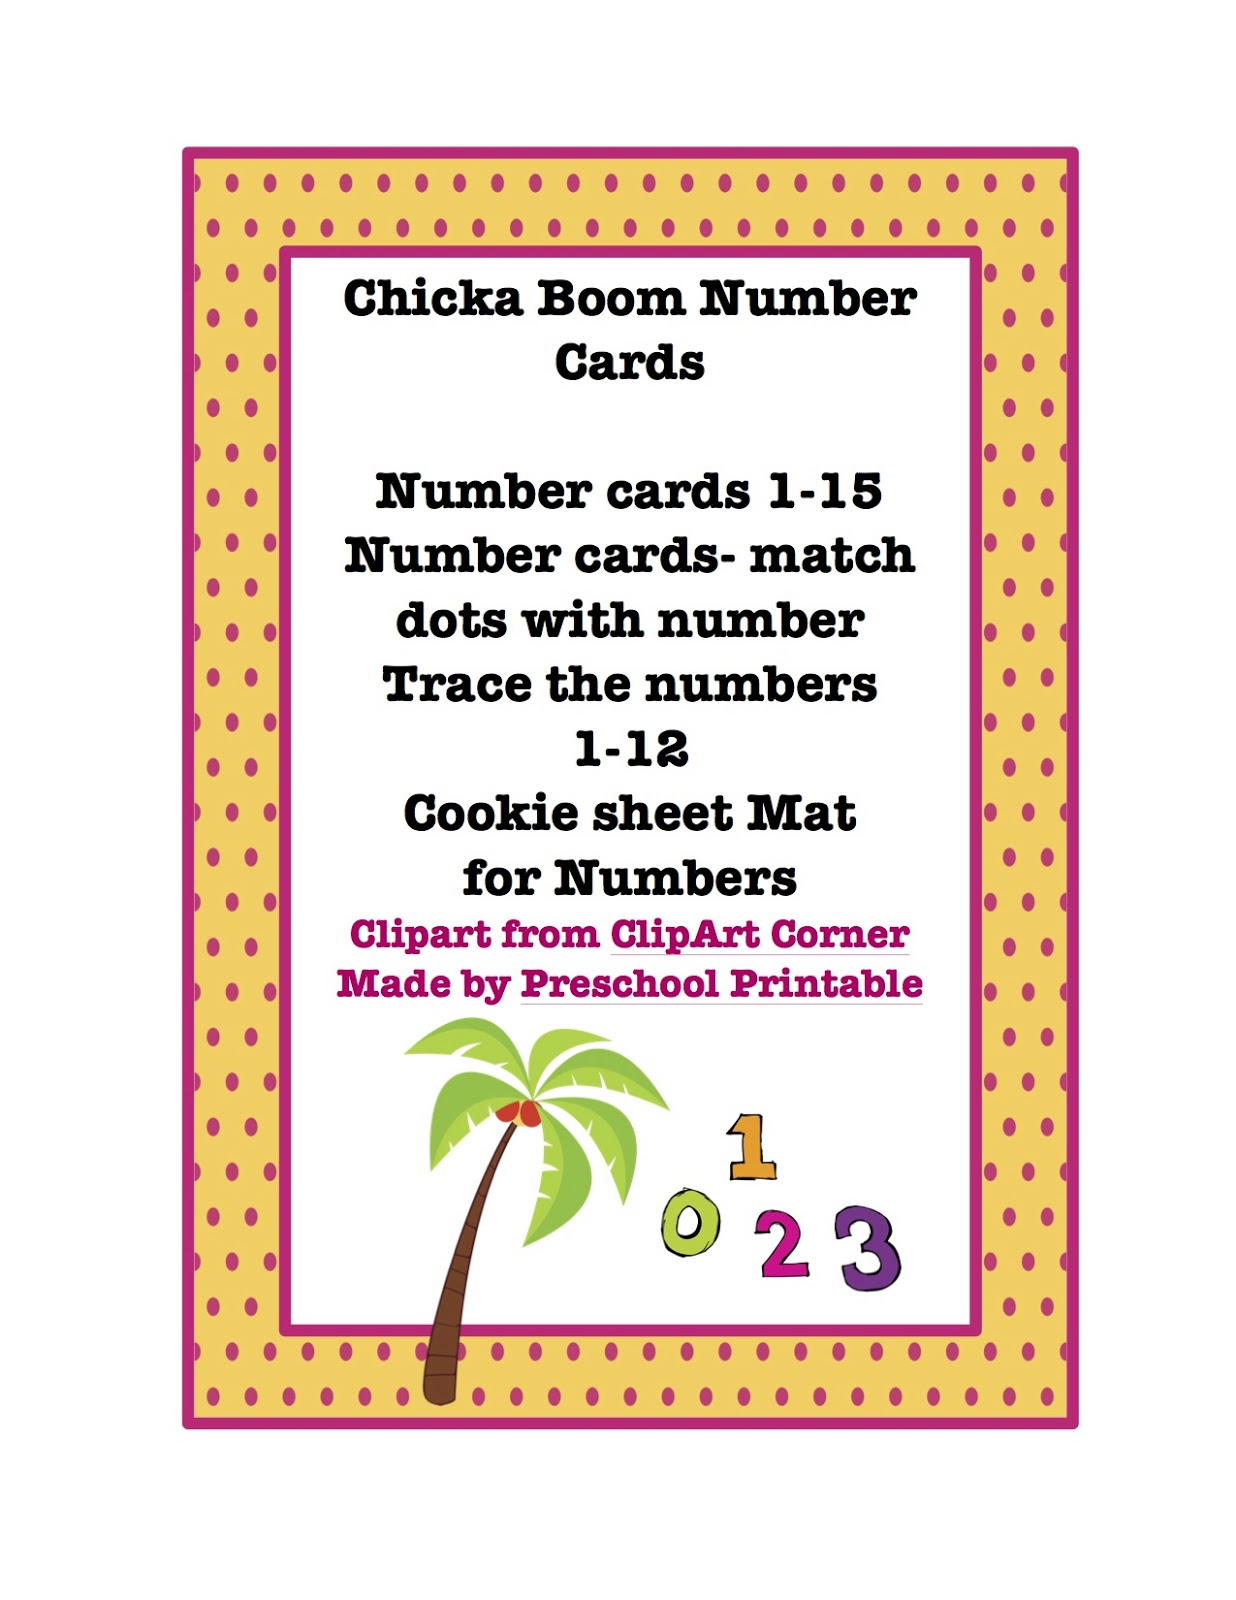 Chicka Boom Number Cards Preschool Printables